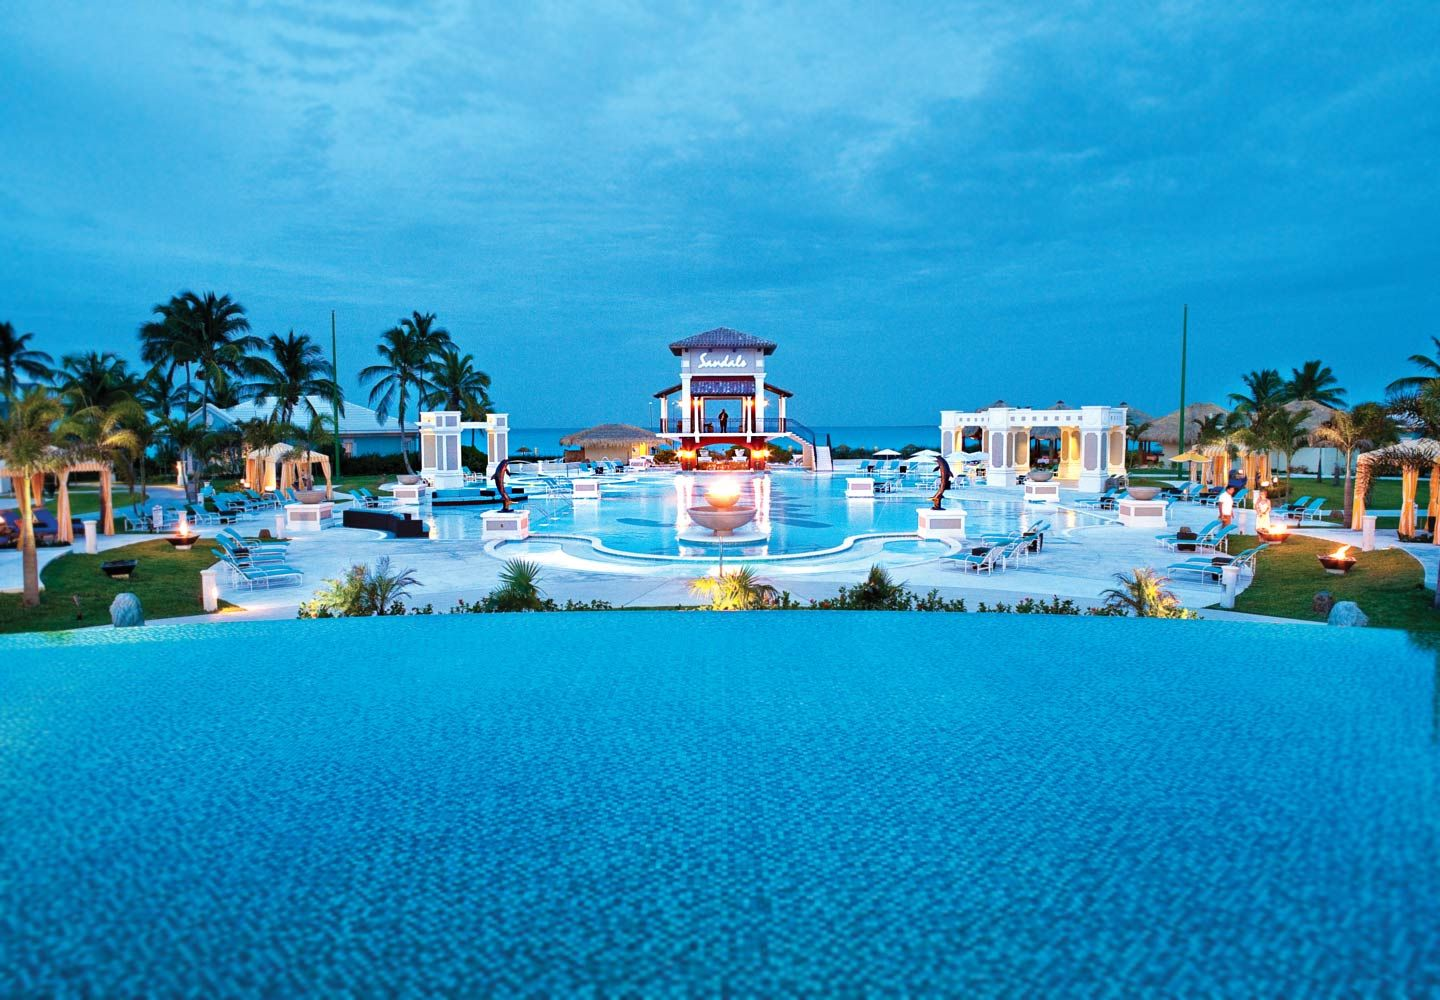 Luxury Bahamas Resort Hotel All Inclusive Vacations Sandals Emerald Bay In